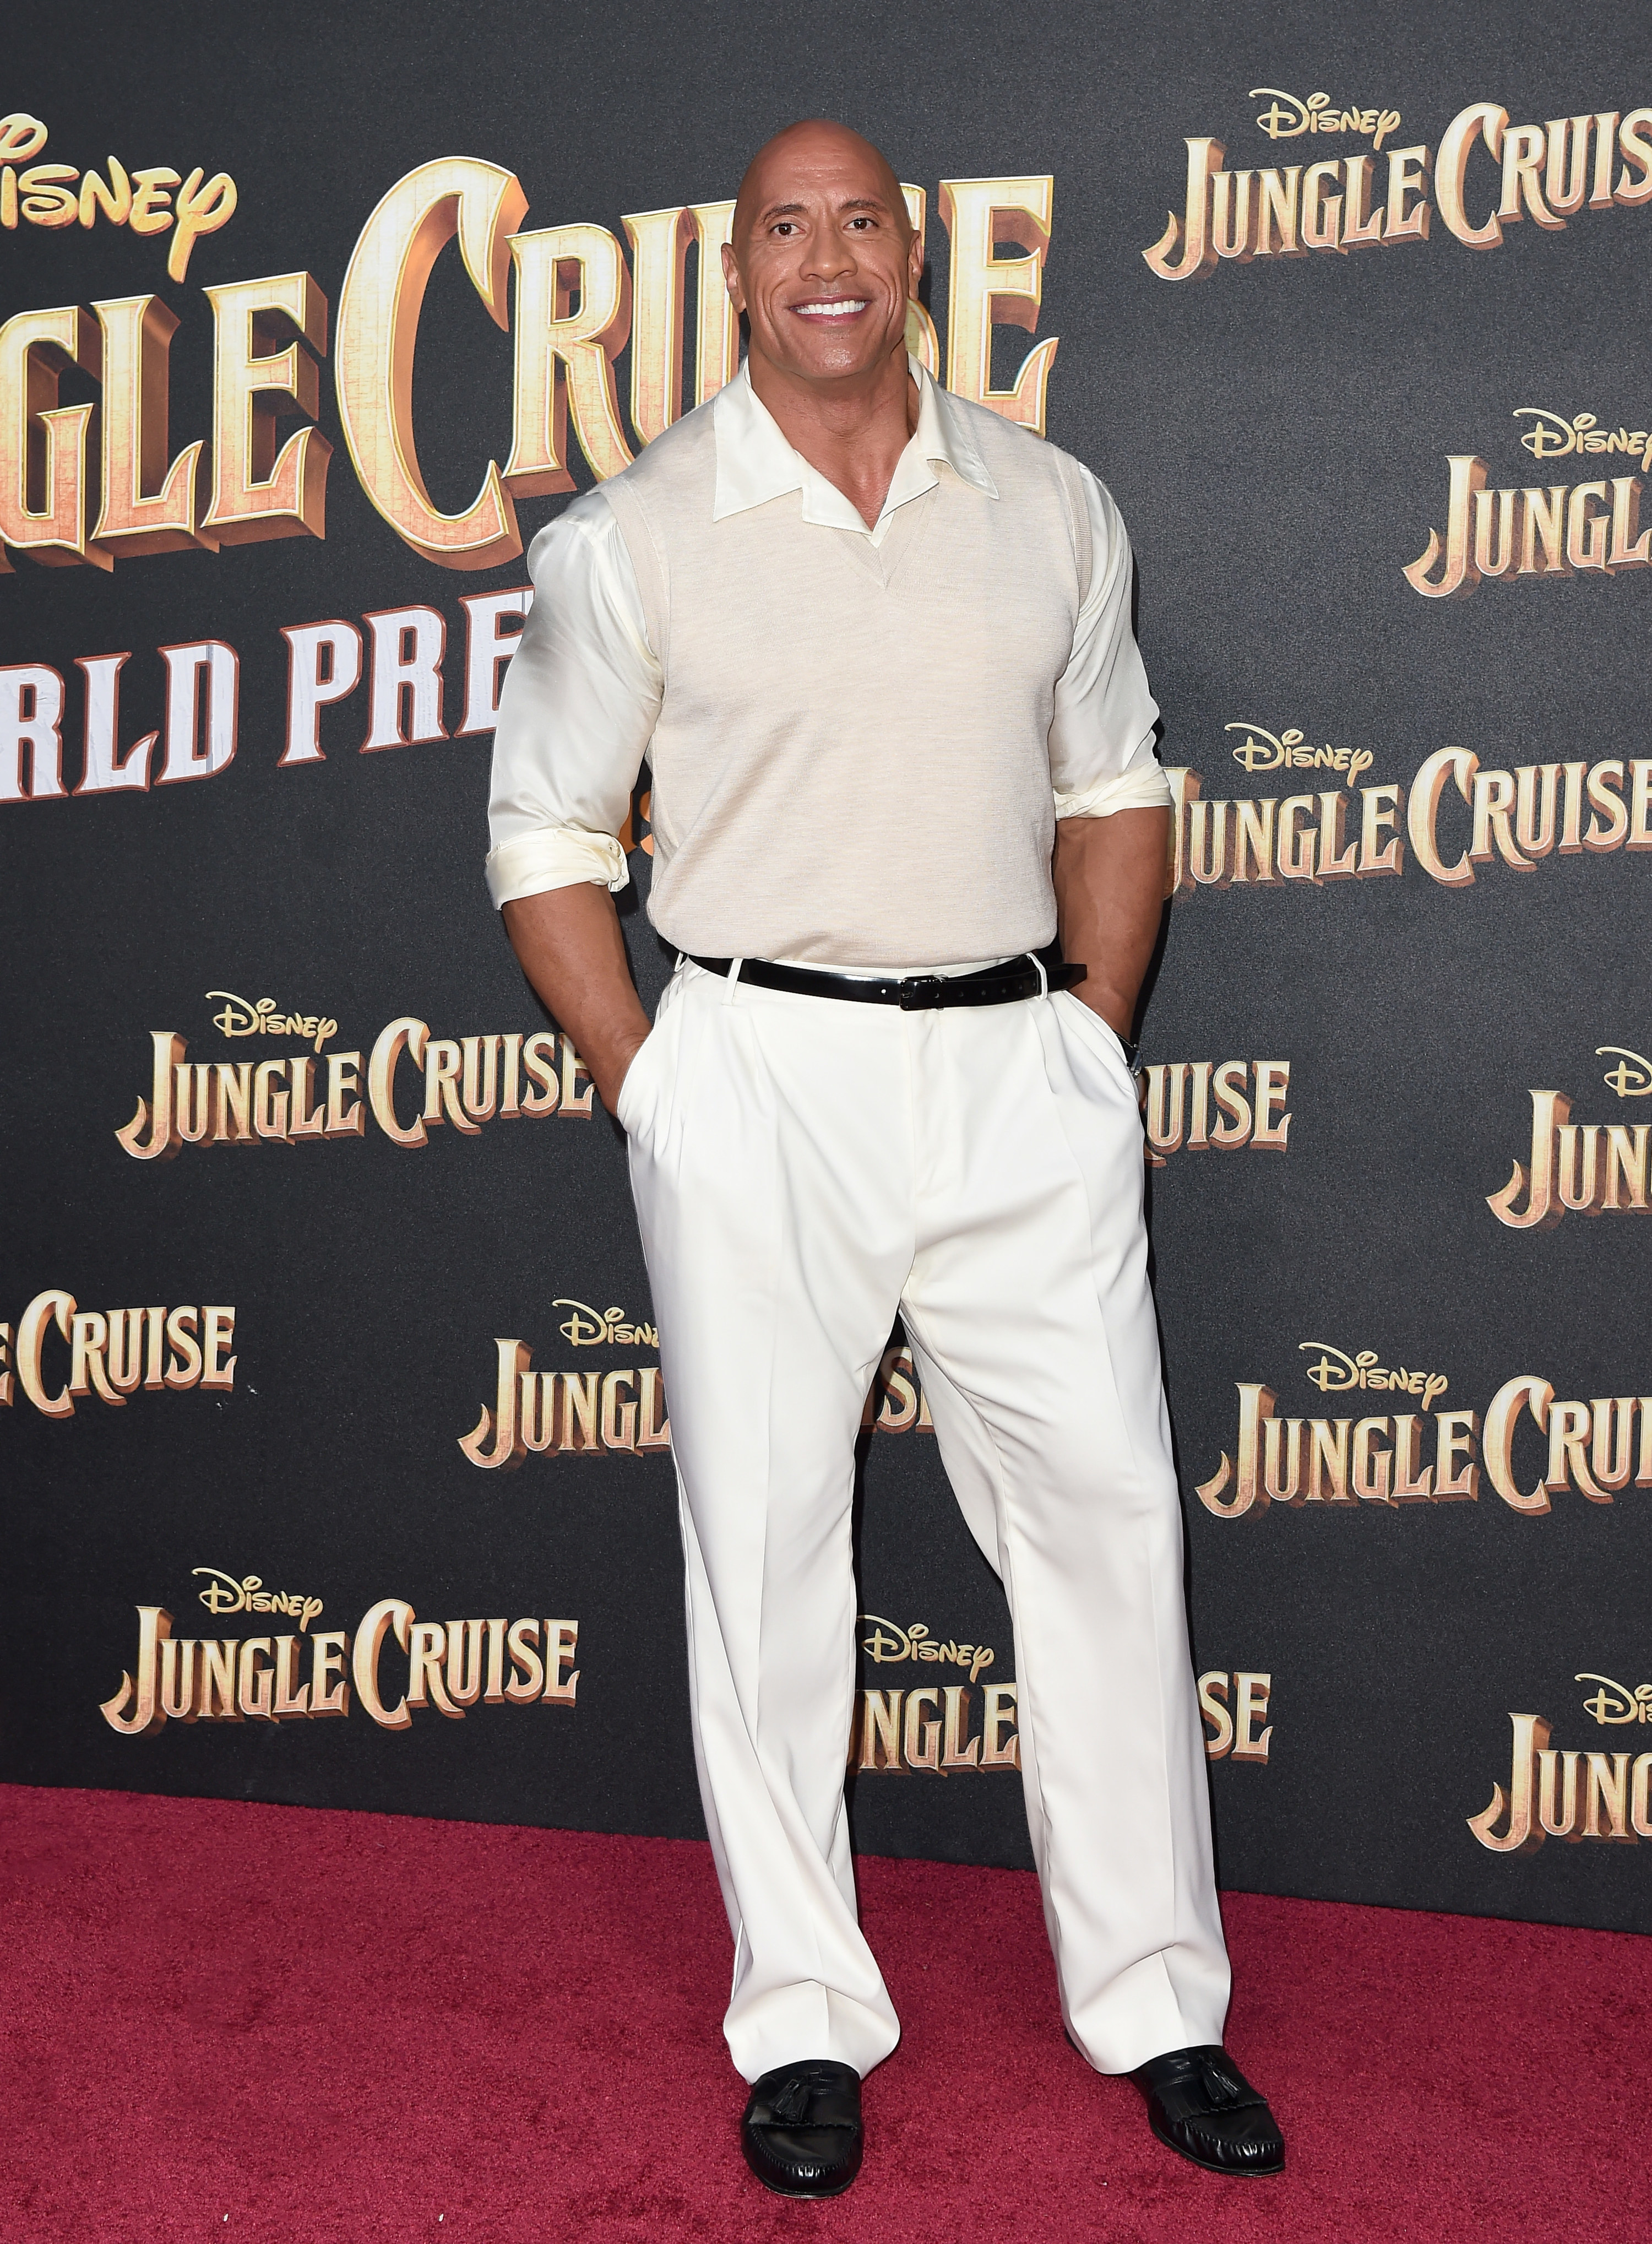 Dwayne wears a monochromatic outfit with a sweater vest, button-down shirt, and dress pants.